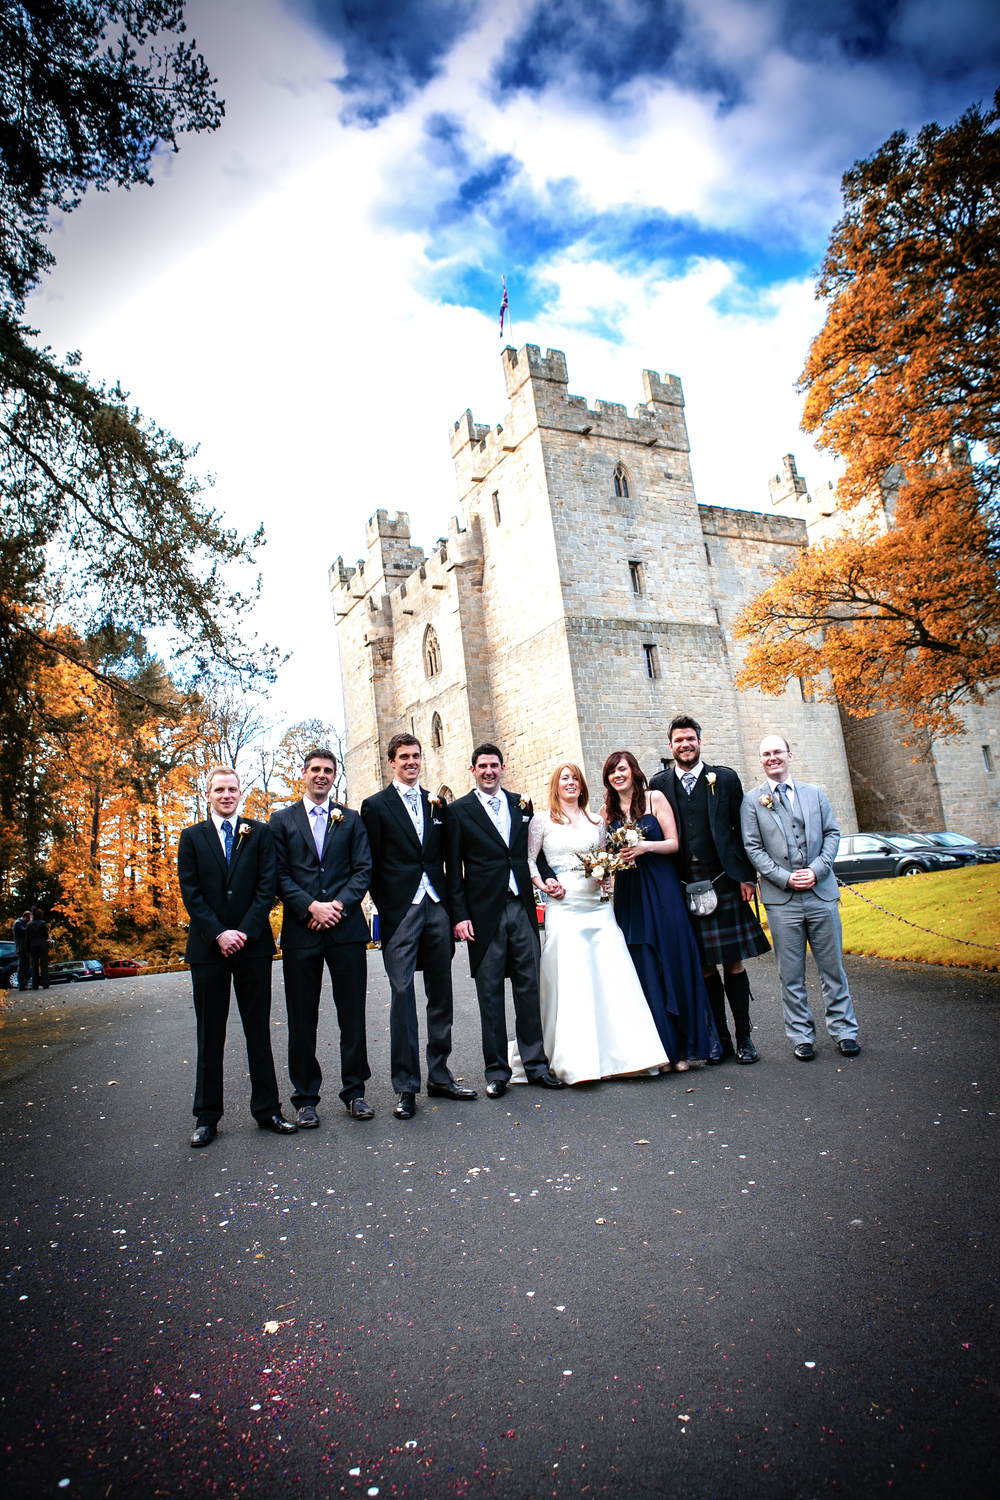 langley castle wedding photography.jpg